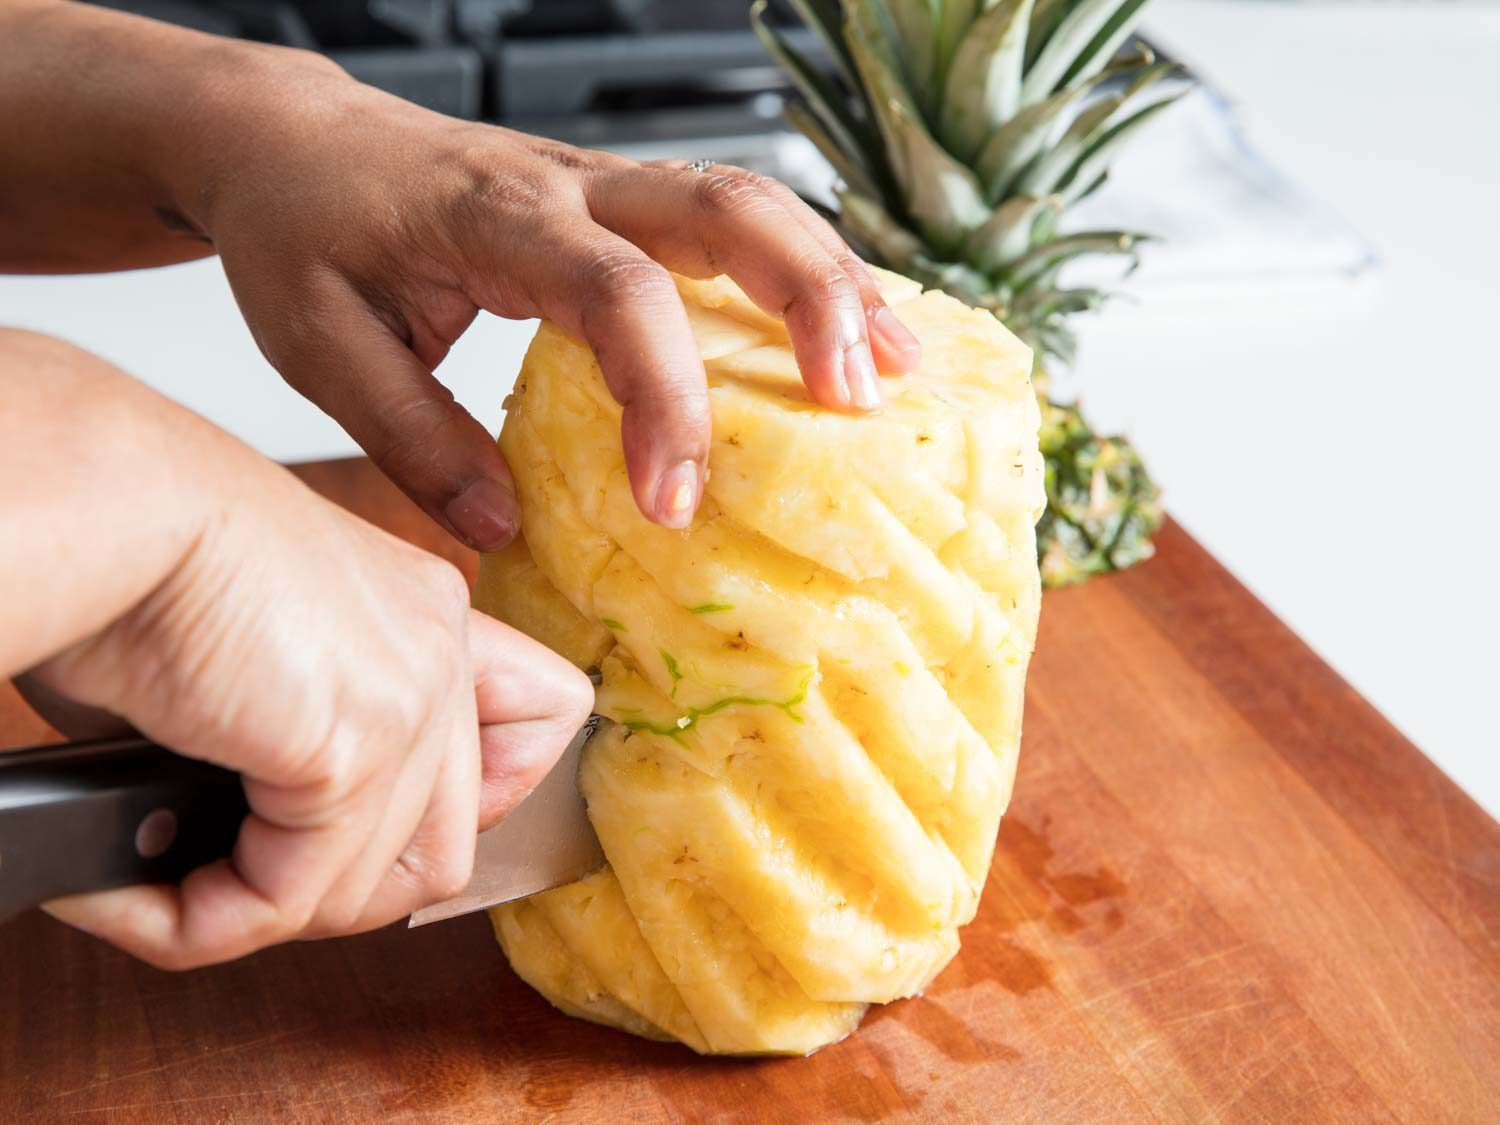 A knife slicing a pineapple into quarters.